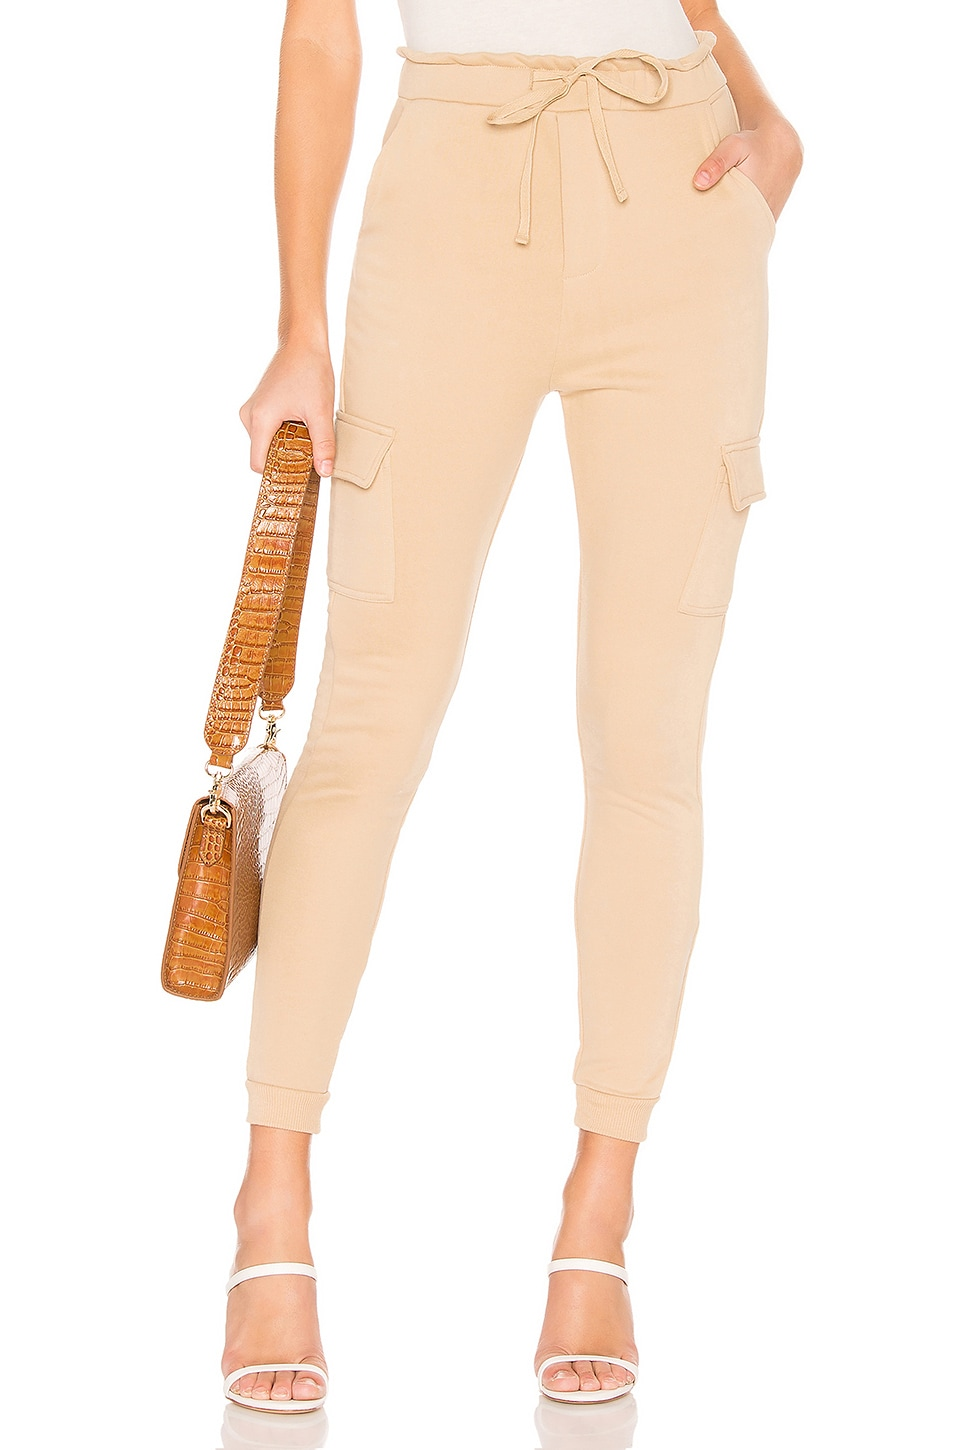 Tularosa Margerie Sweatpants in Nude